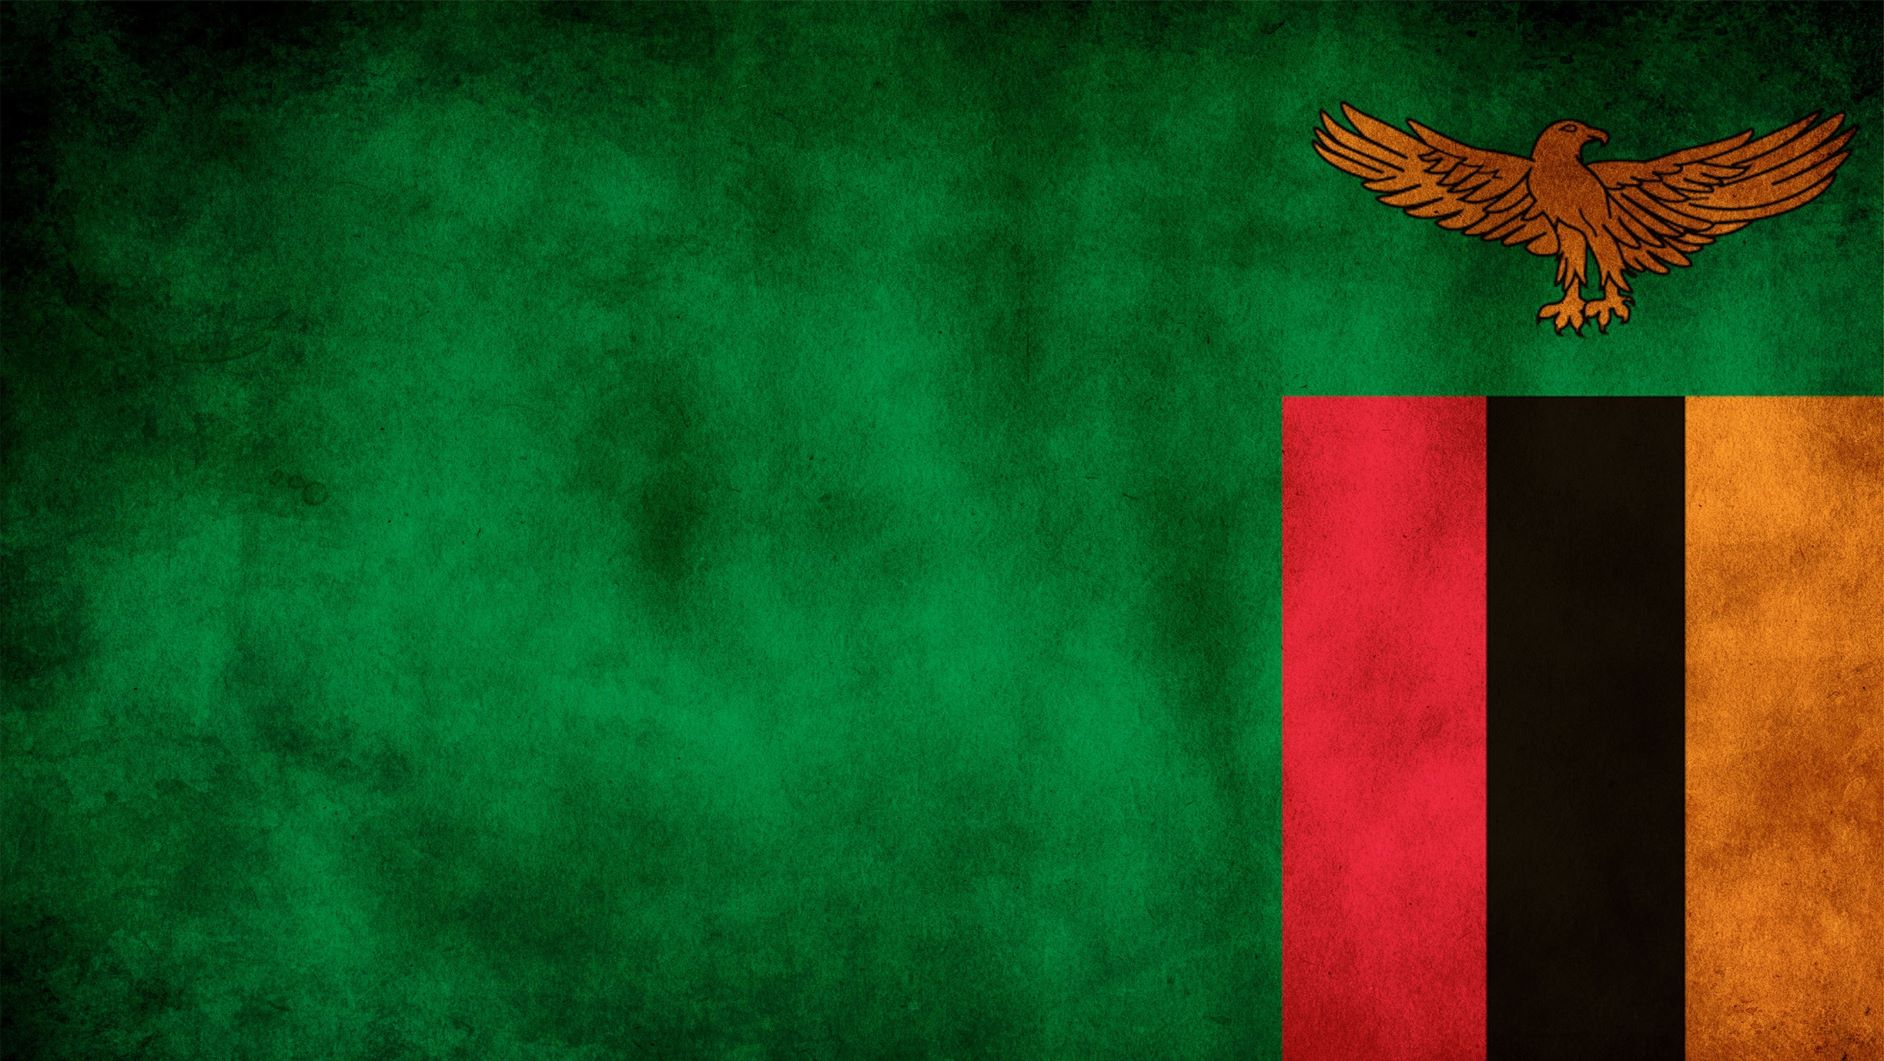 Zambia: Opposition landslide boosts prospects, but upside now priced in